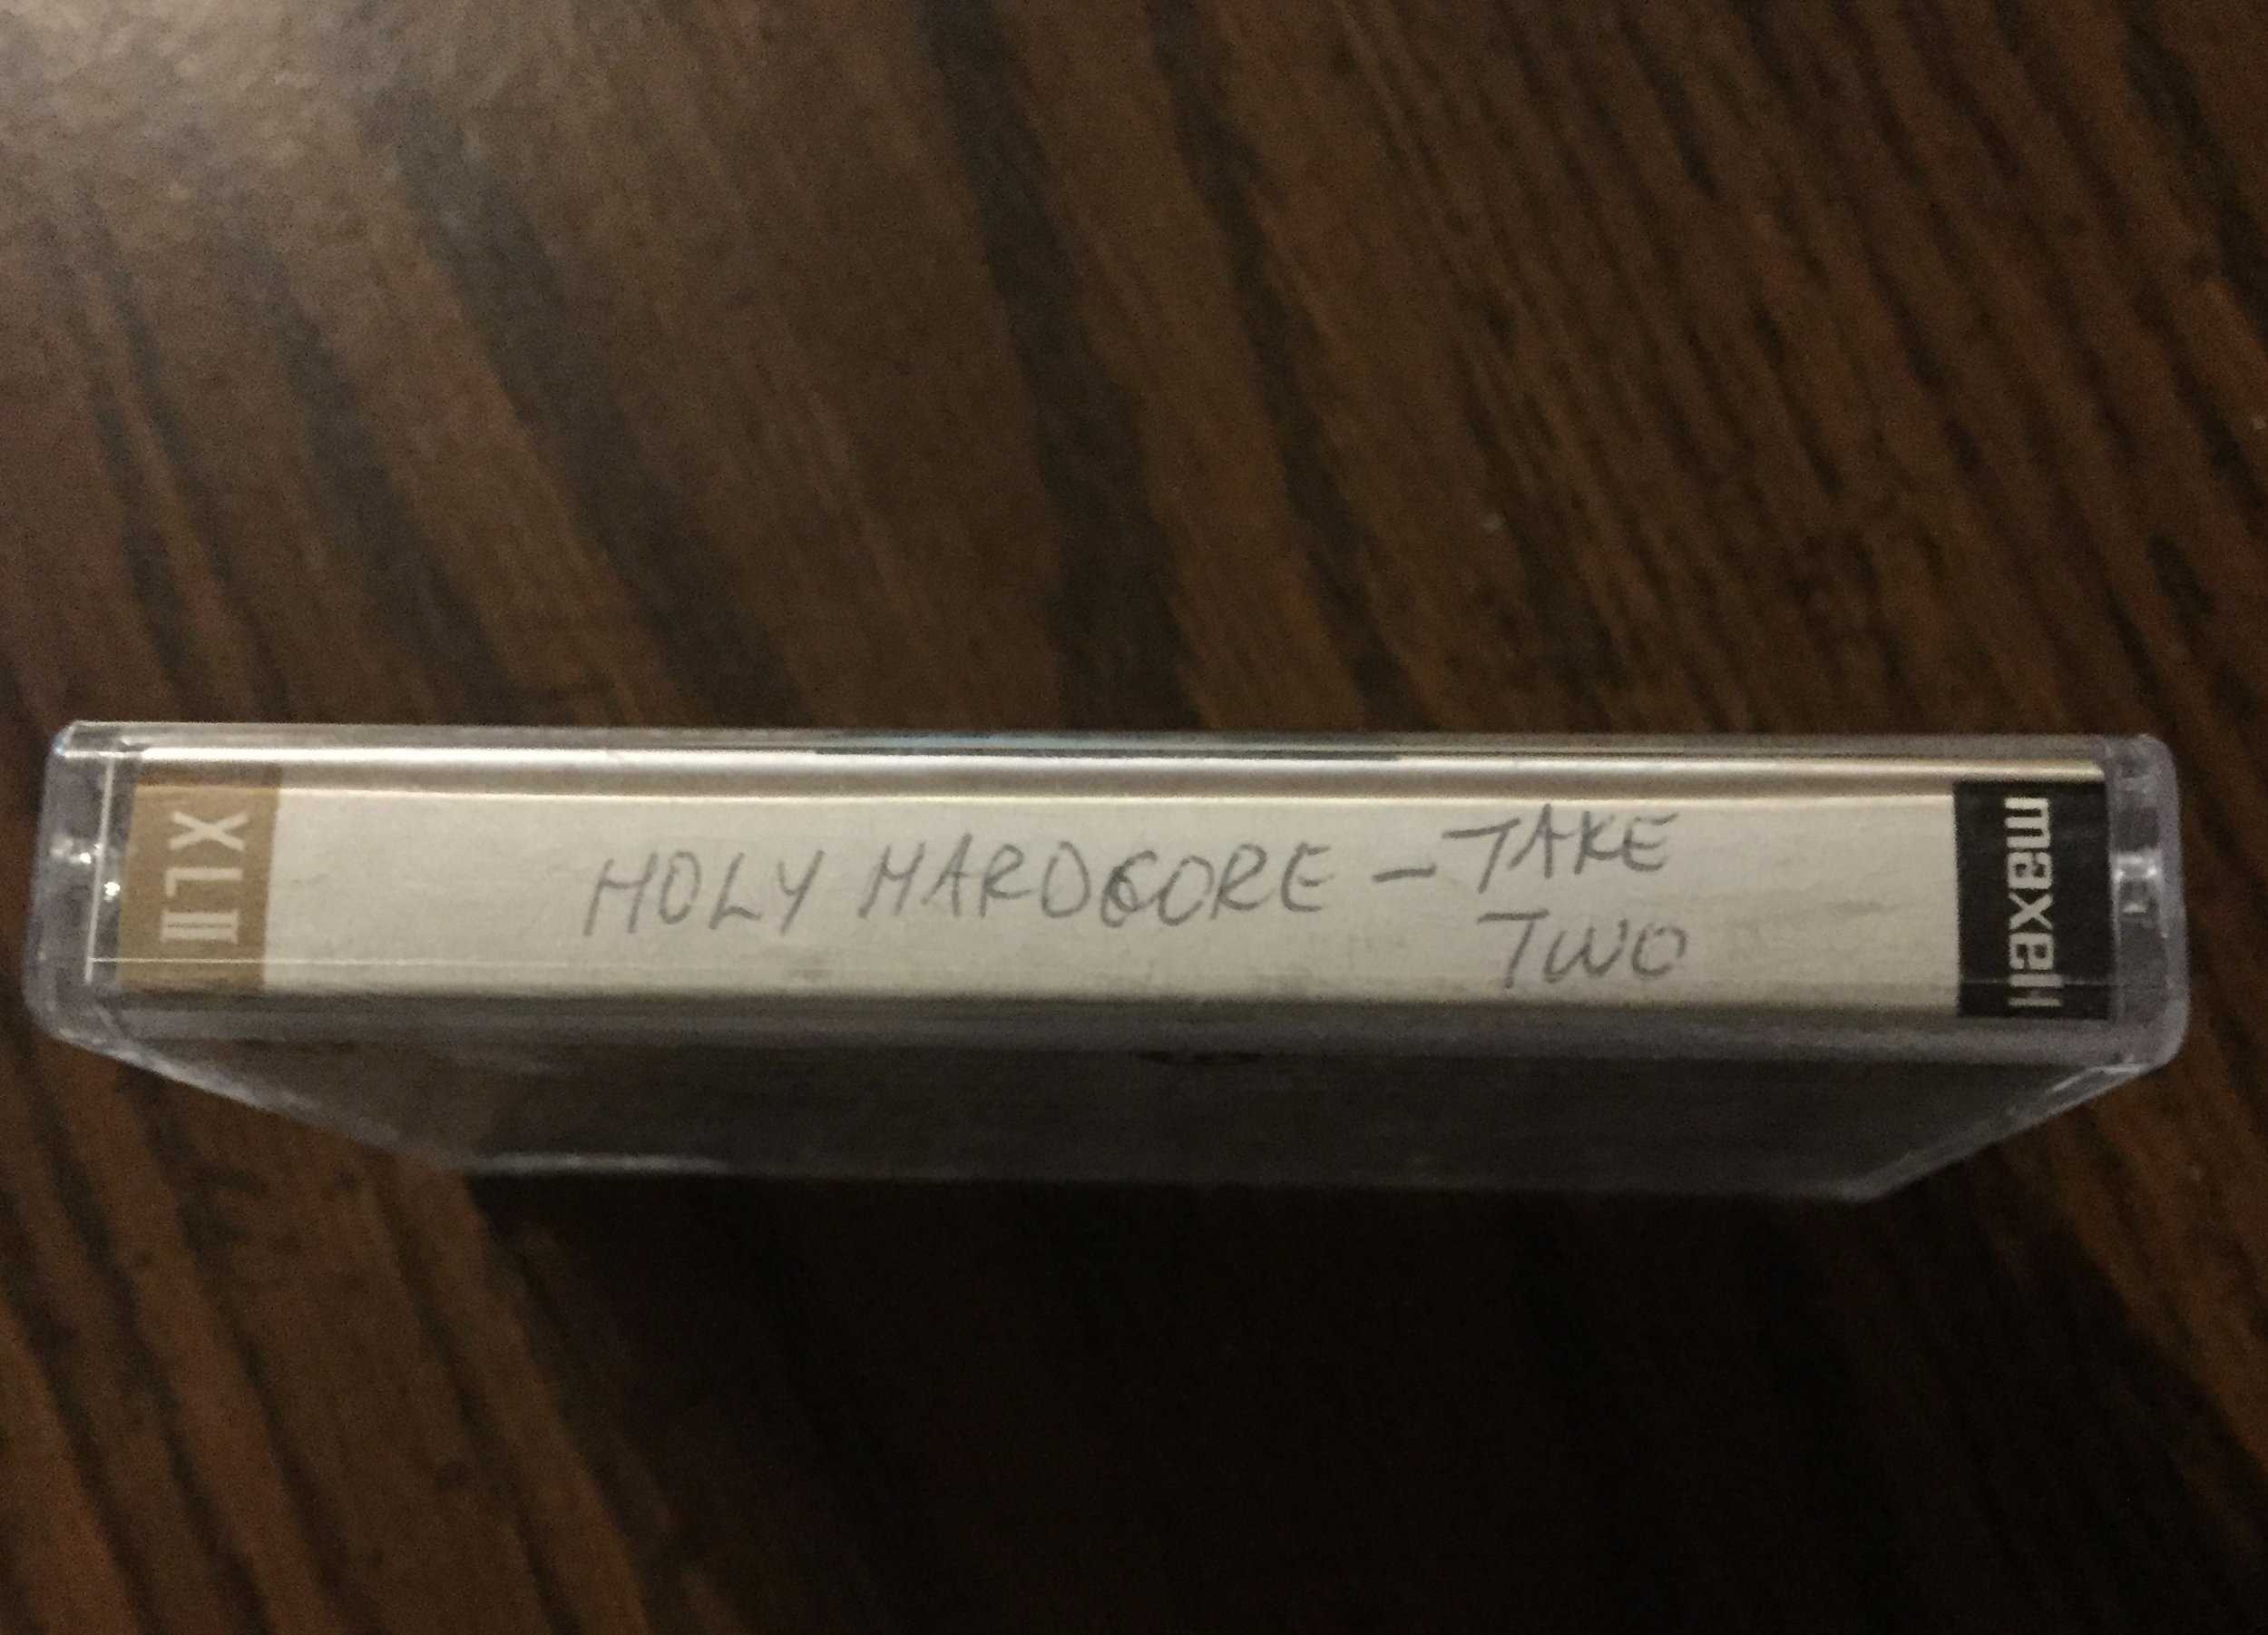 """One of my """"Holy Hardcore"""" mix tapes, from the mid-90s, I suppose...This was obviously second in a series given its subtitle """"Take Two"""""""